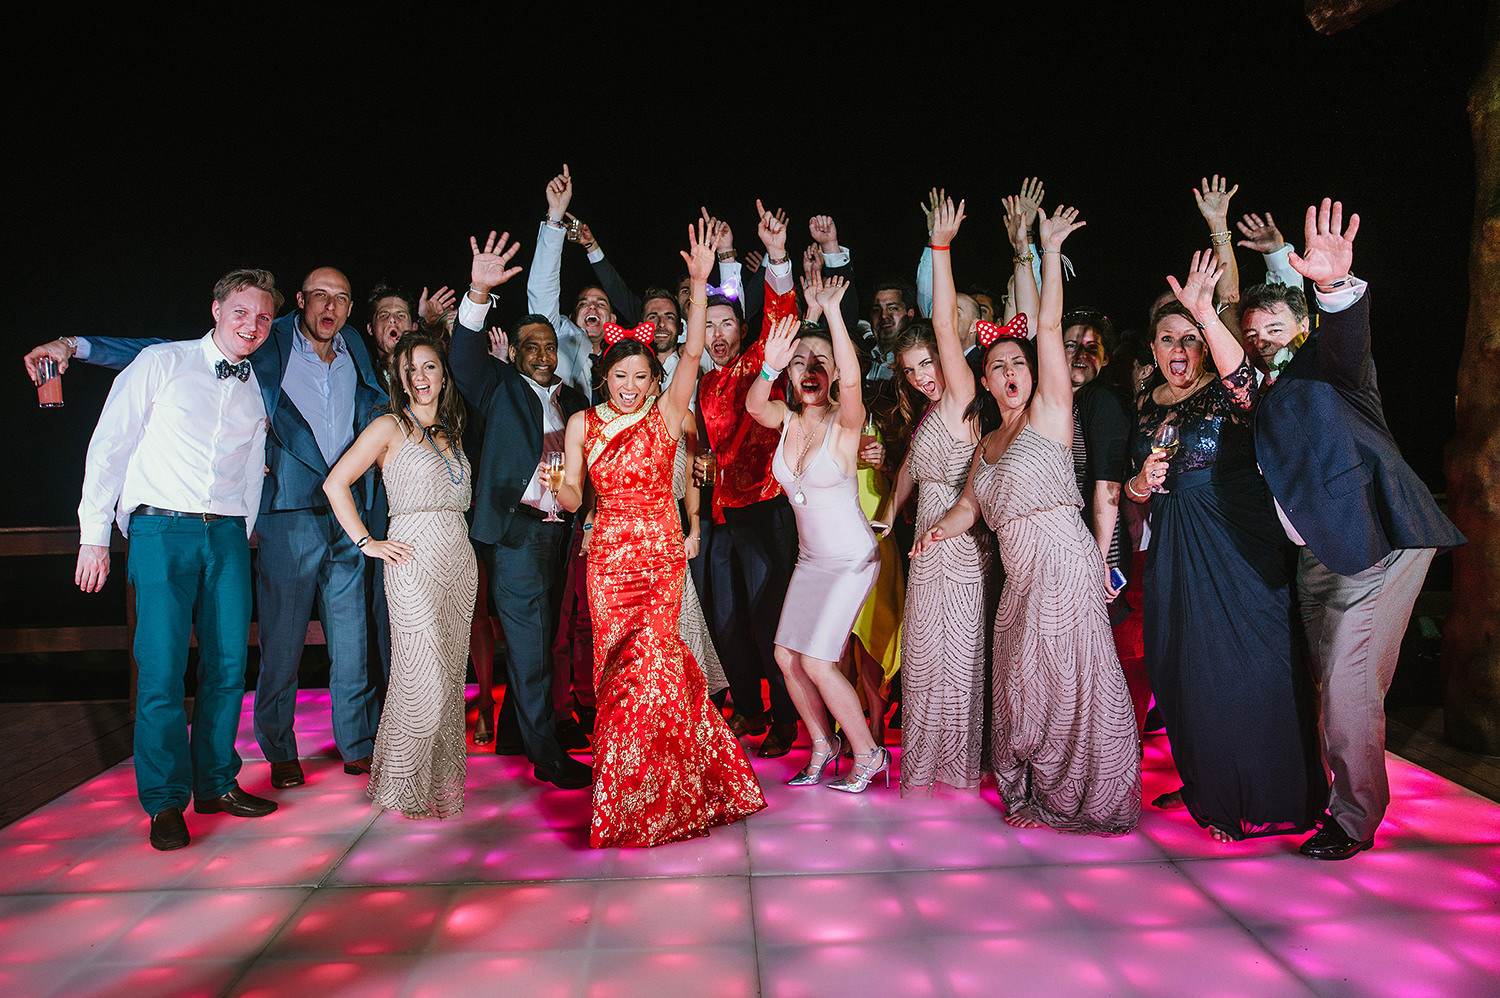 CherylReed_Wedding_Kape_Photography_WeddingPhotography_Mexico_Boda_Fotografia_Royalton_Hideway_Cancun_RivieraMaya_PlayadelCarmen_Beach_778FB_BLOG.jpg